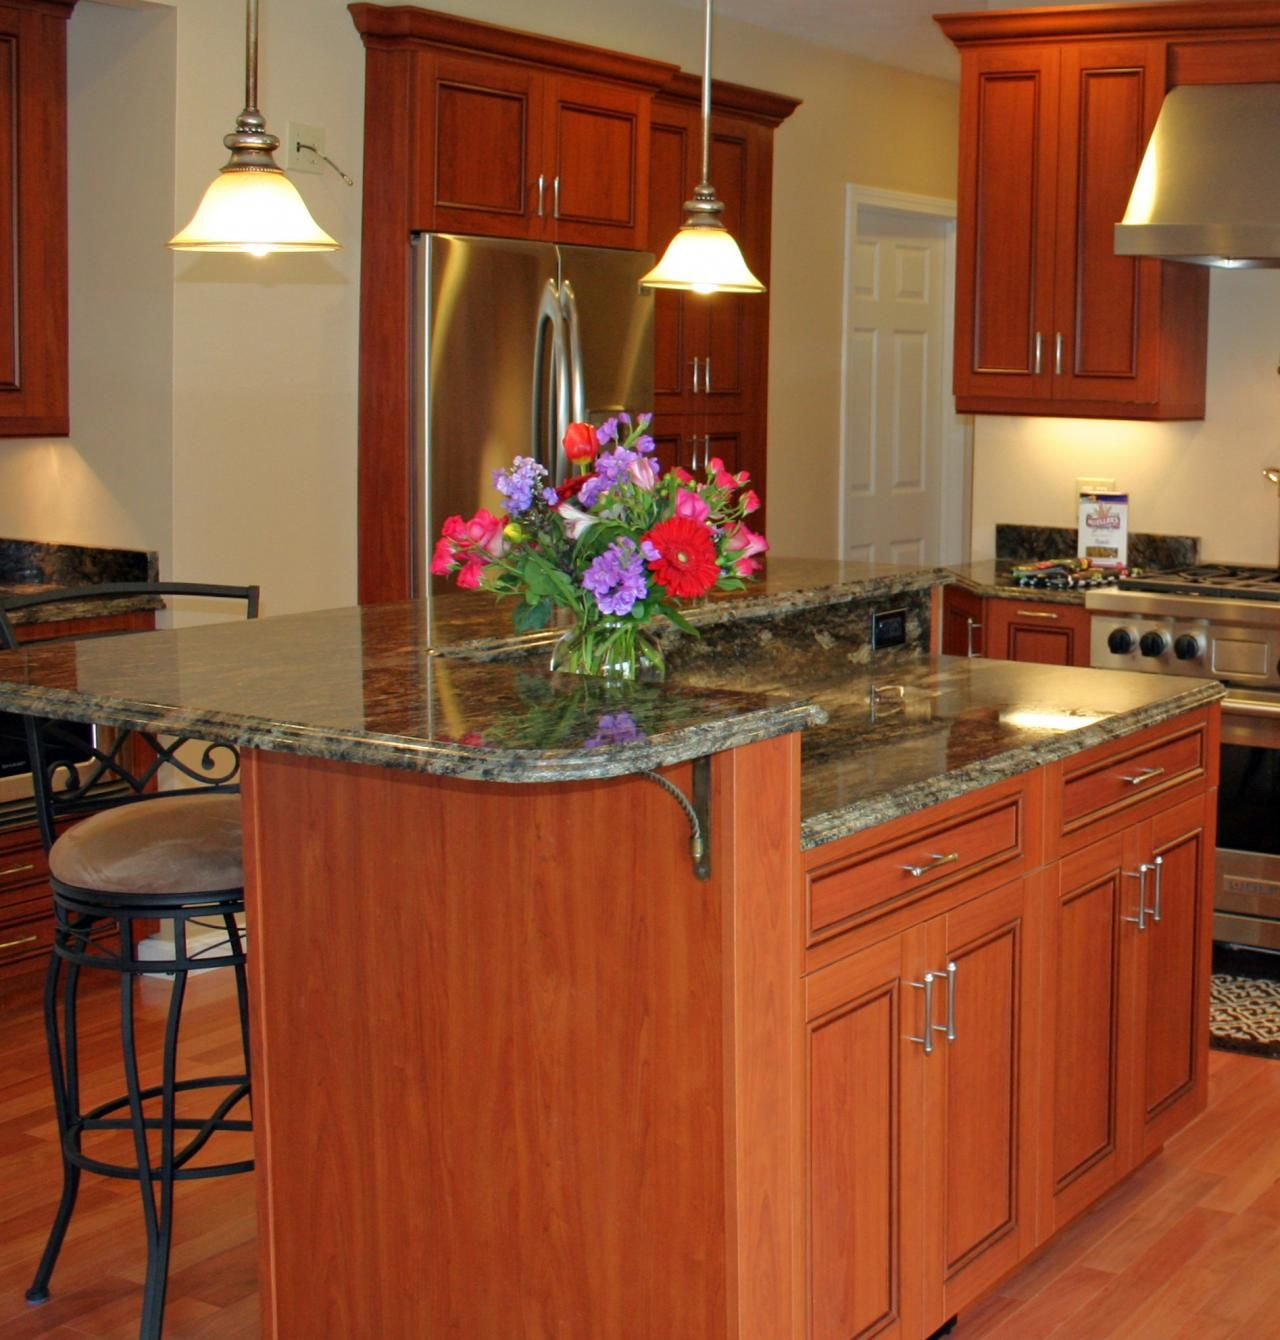 What Is Island Kitchen Kitchen Island With 2 Levels | Kitchen Islands | Pinterest